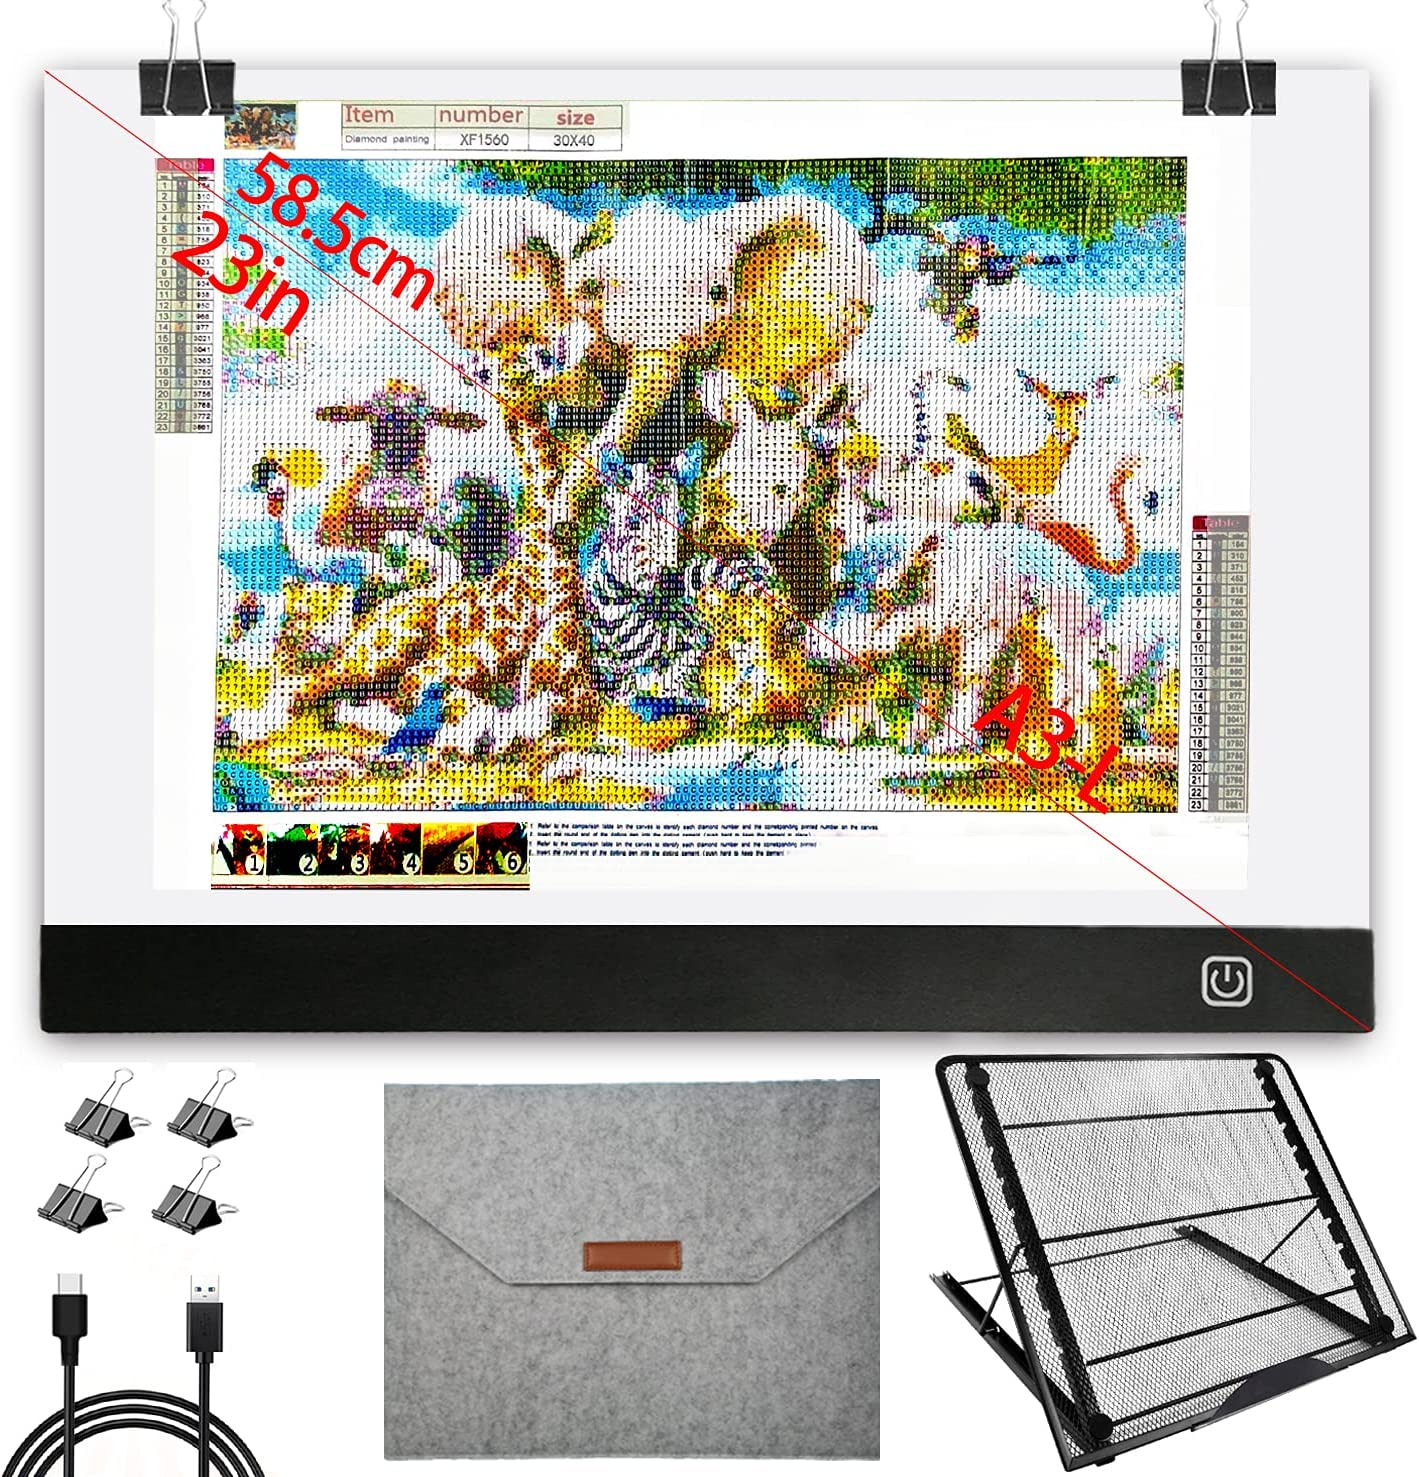 Diamond Painting Light Pad A3 Special sale item with L Bag Protective and Award-winning store Storage